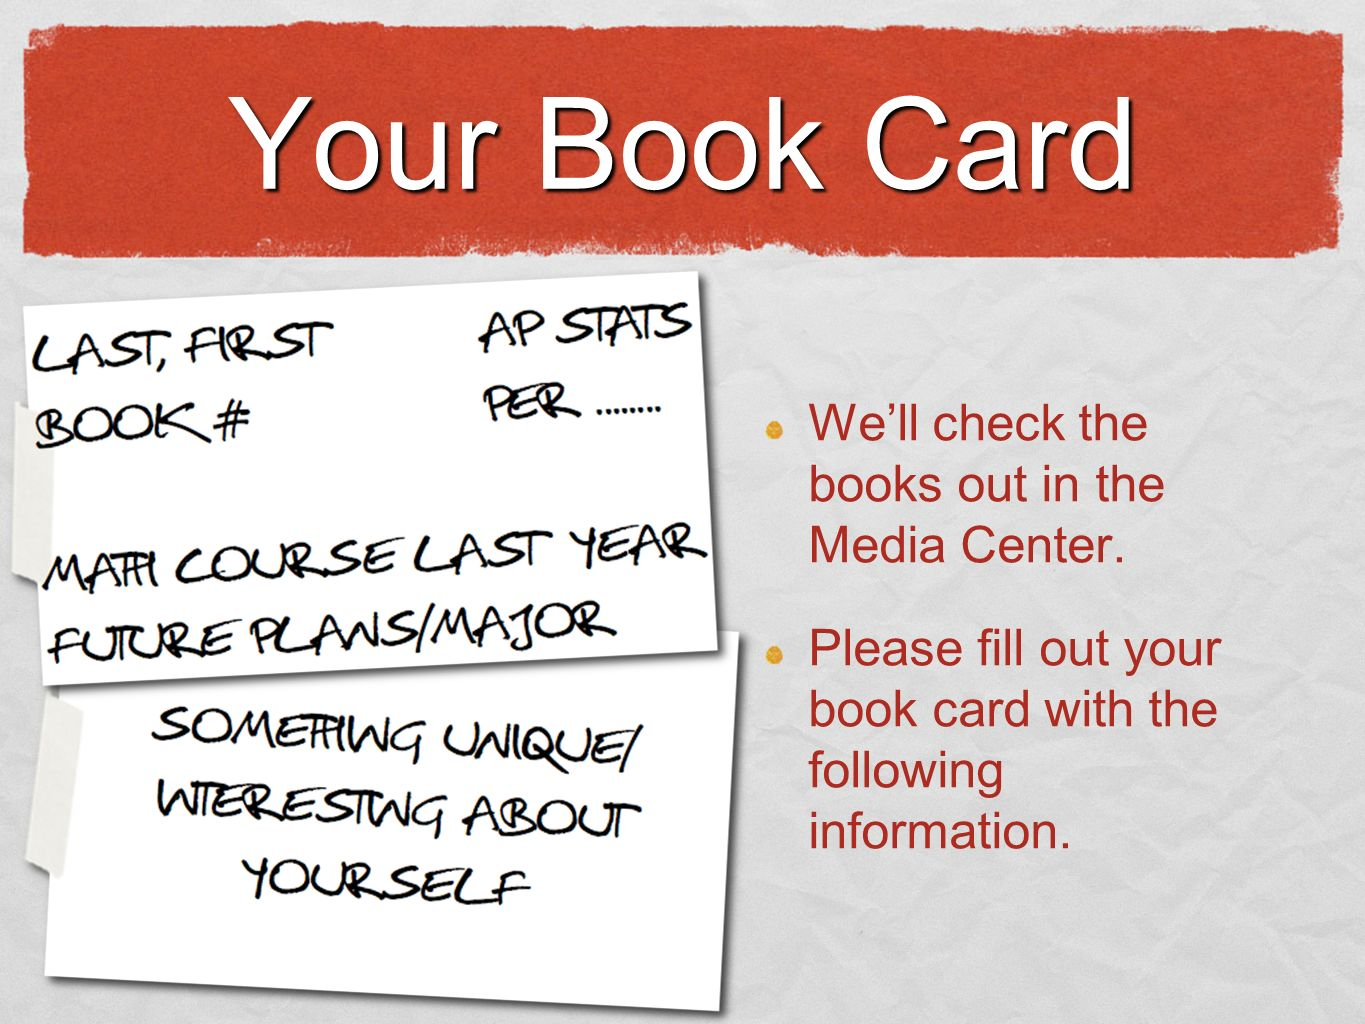 Your Book Card Well check the books out in the Media Center.